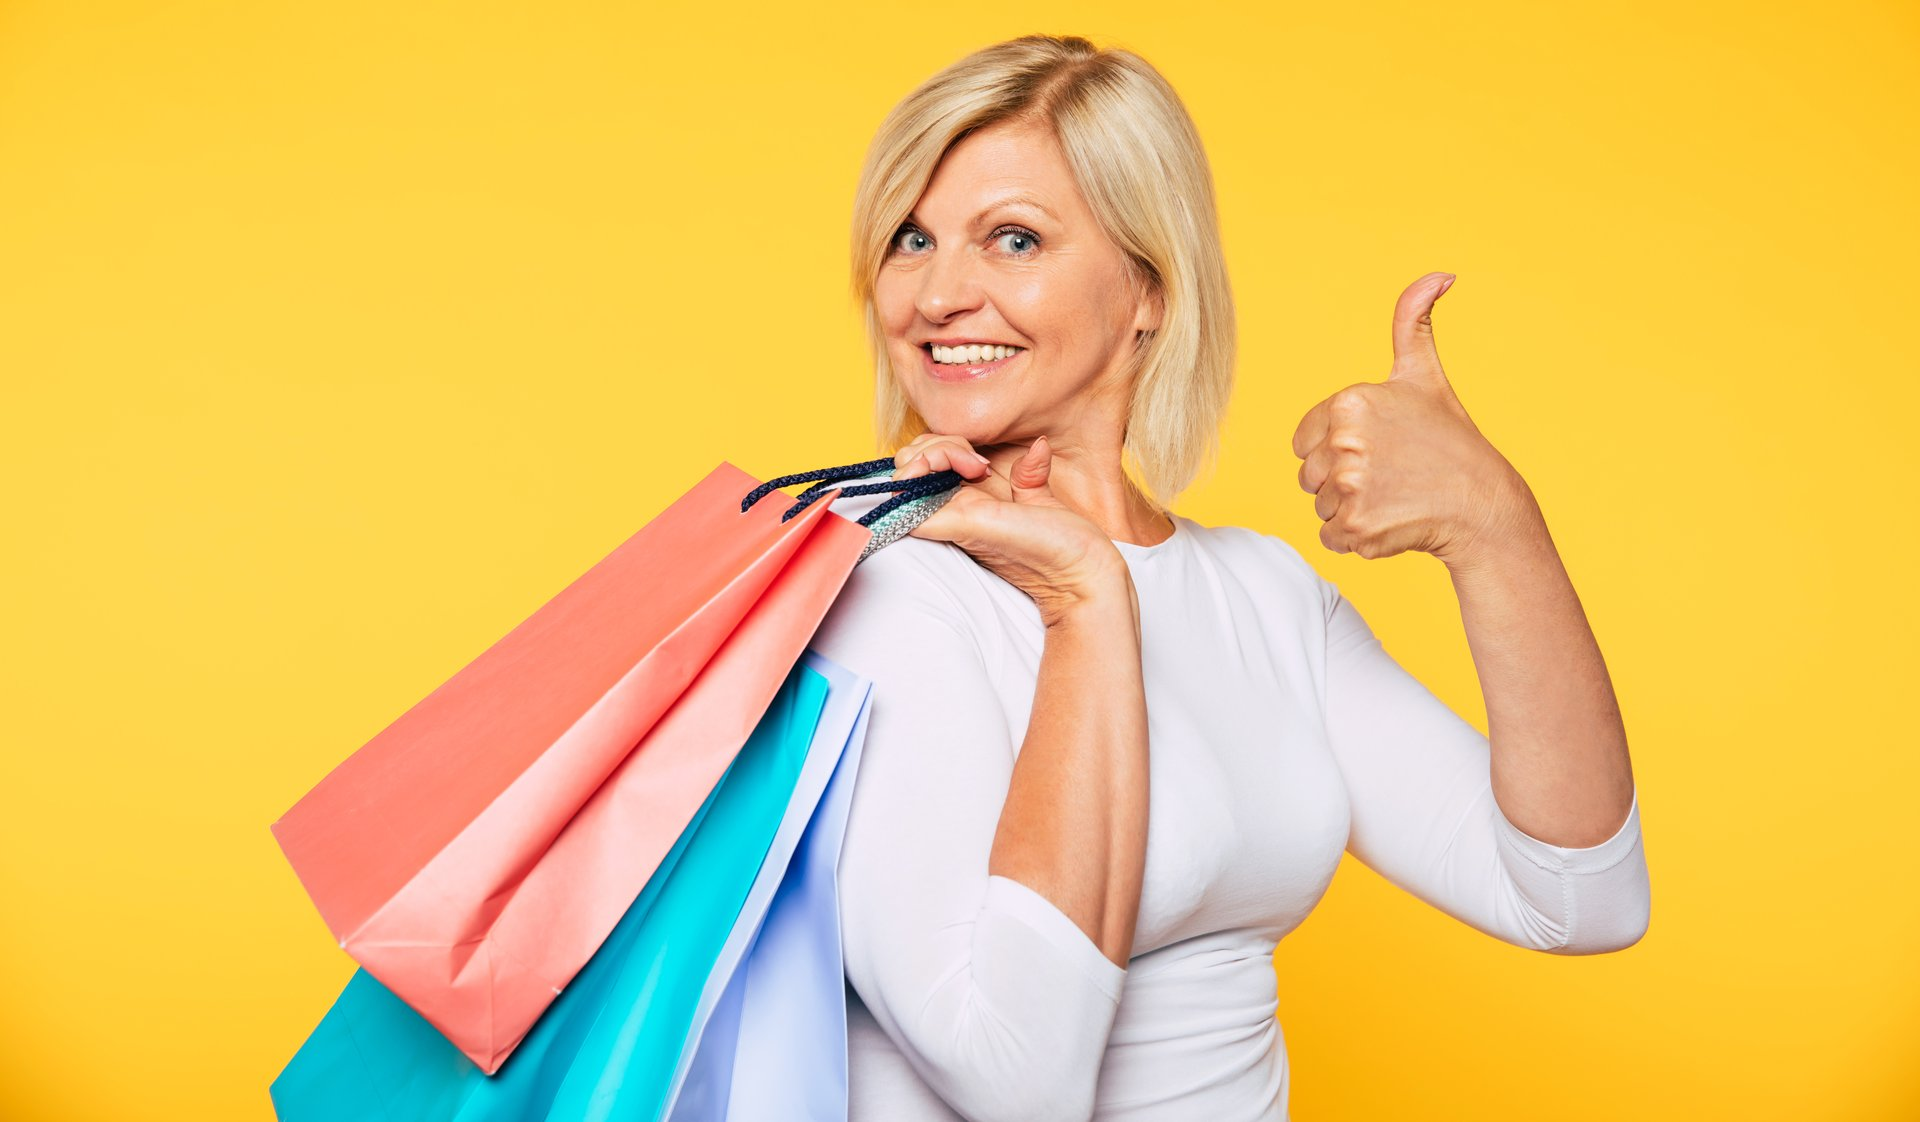 Woman shopping gives thumbs up